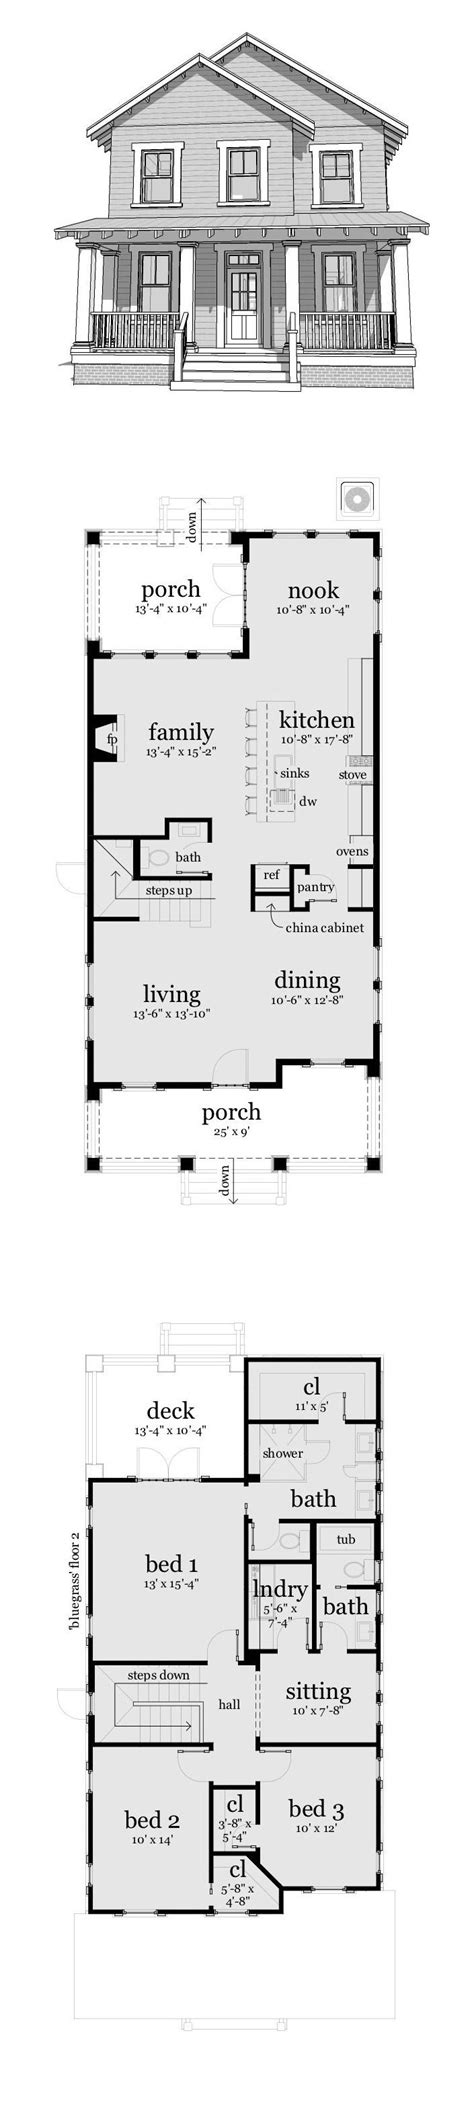 narrow 3 story house plans